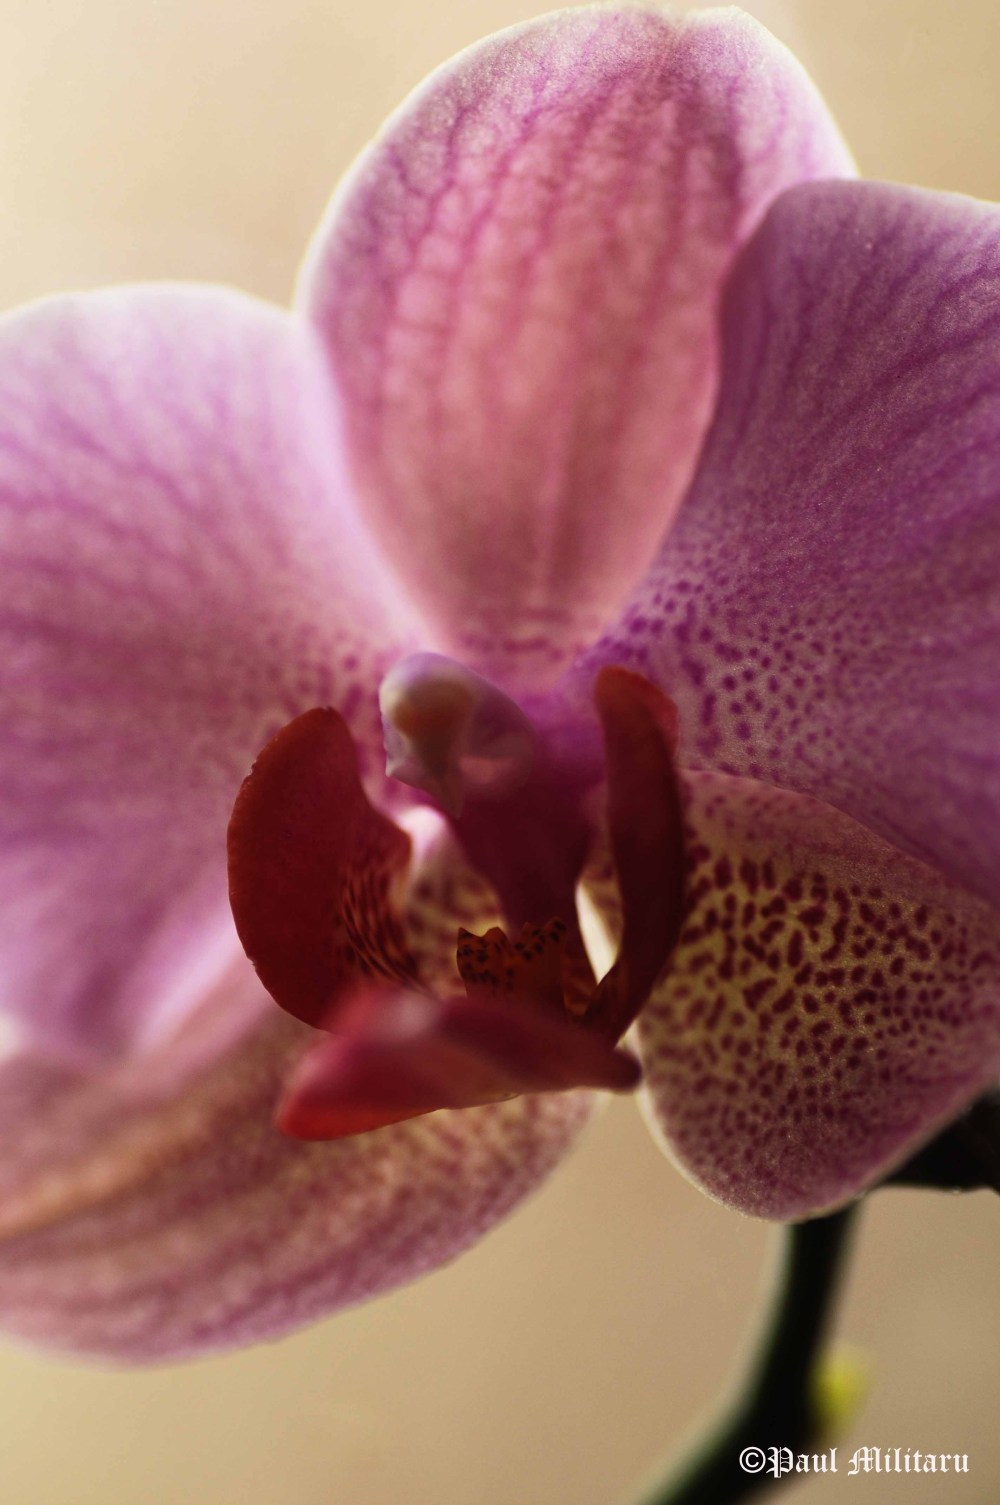 orchid - exotic delicacy of a flower